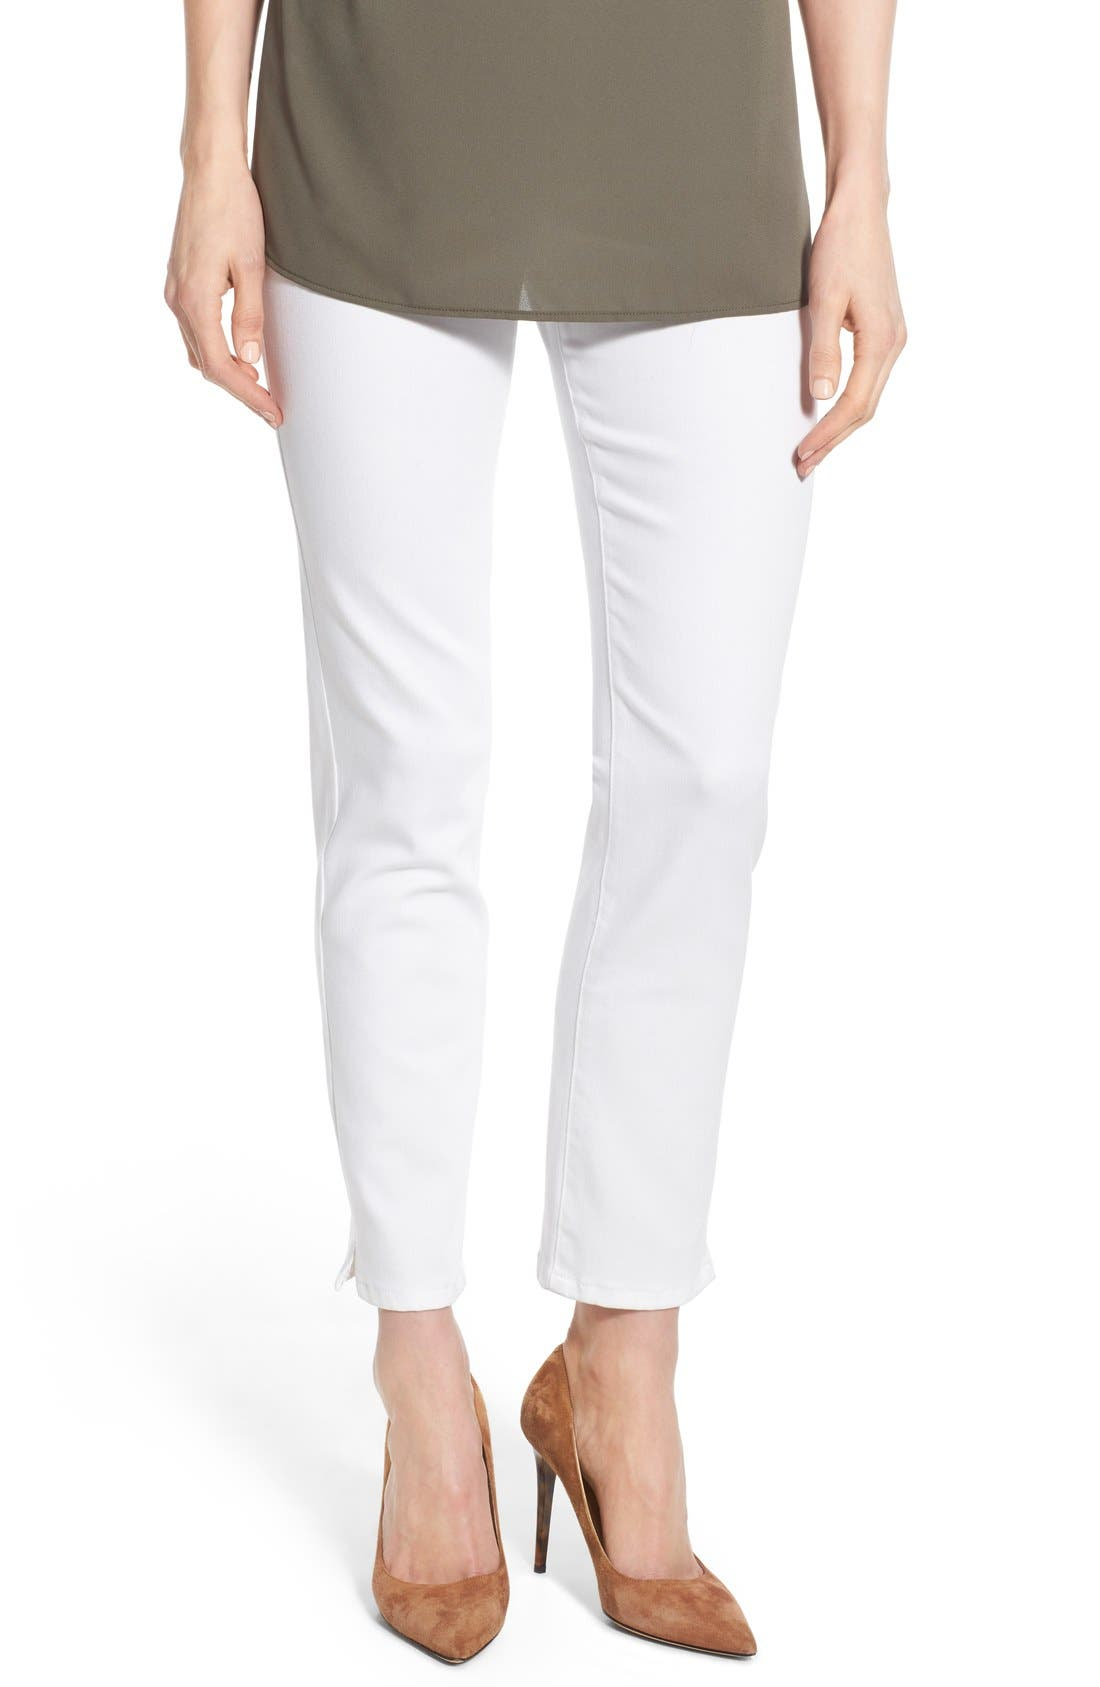 Main Image - NYDJ 'Millie' Pull-On Stretch Ankle Skinny Jeans (Endless White) (Regular & Petite)